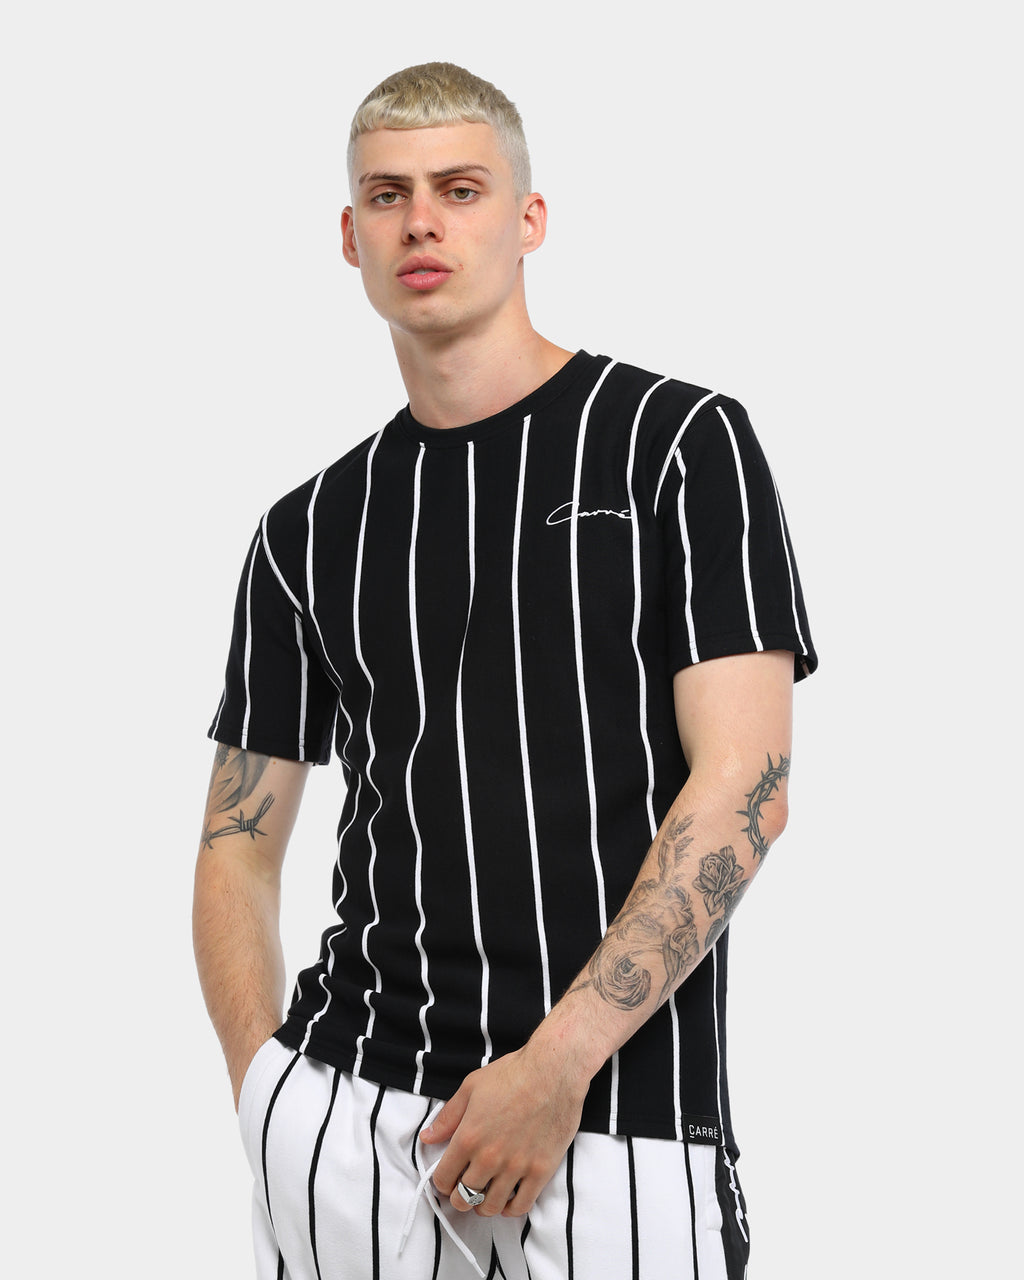 Carré Bande Practice Droptail Tee Black